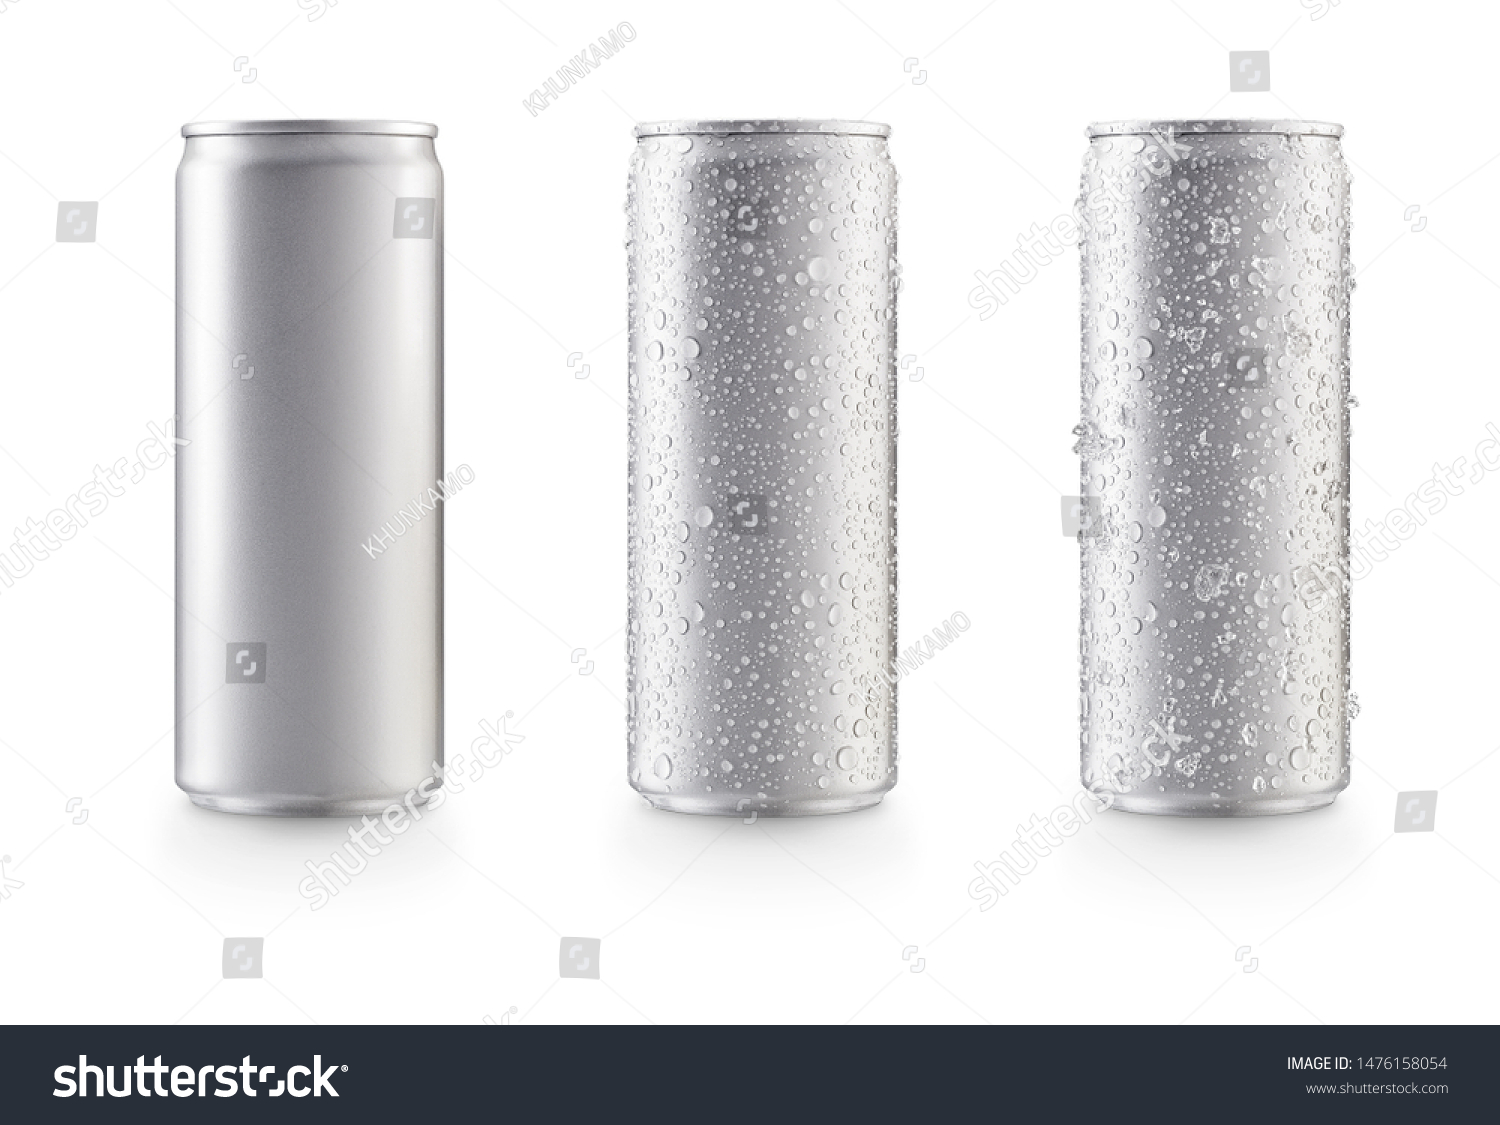 Aluminum slim cans in silver isolated on white background,canned with water drops,canned with water drops and ice #1476158054